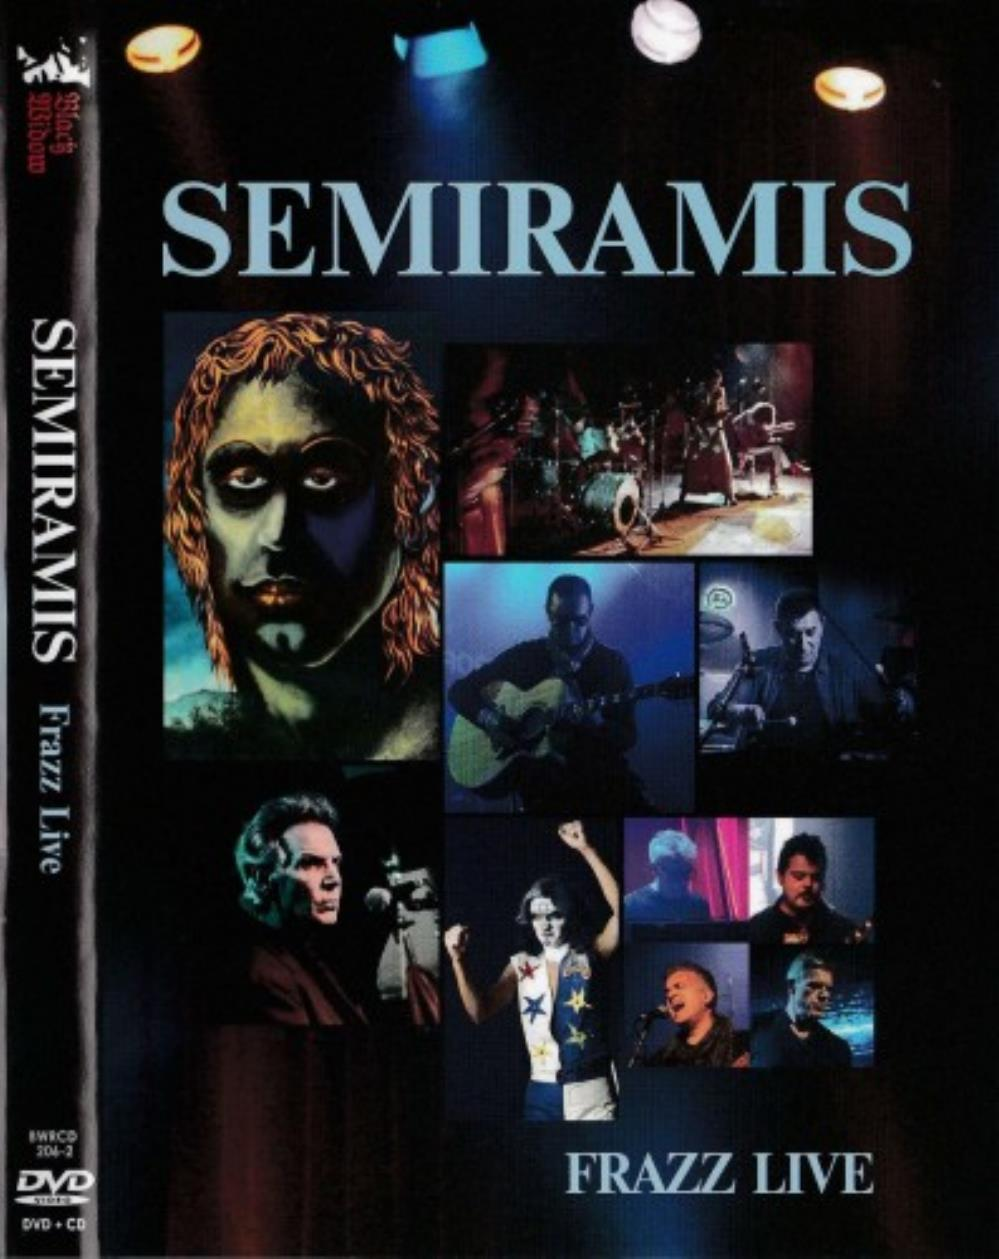 Frazz Live by SEMIRAMIS album cover